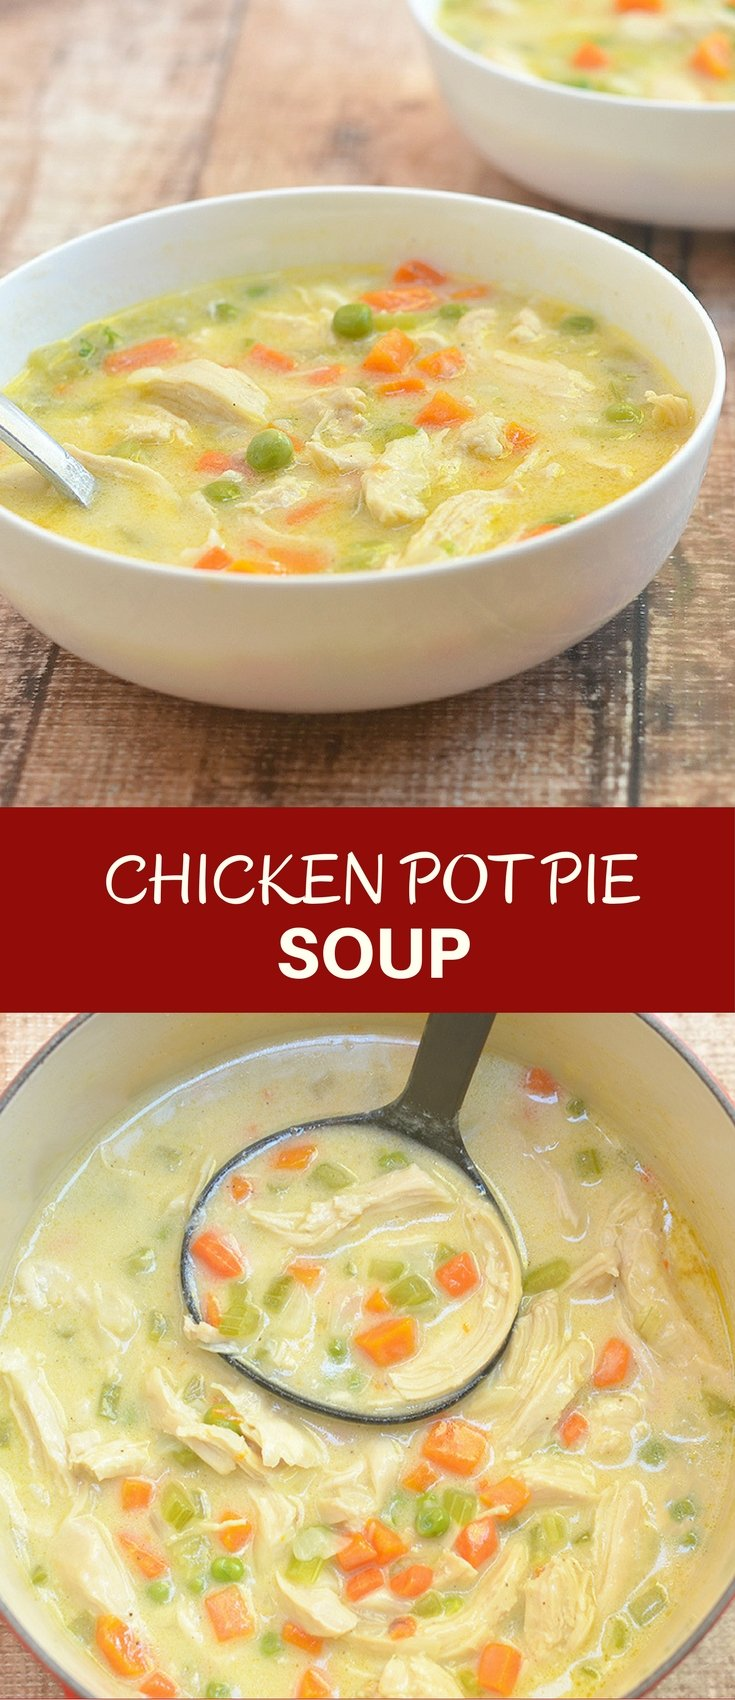 Chicken Pot Pie Soup has all the flavor and comfort of classic chicken pot pie but without the extra calories and extra work of a pie crust. Hearty and delicious, it's perfect comfort food for chilly winters.